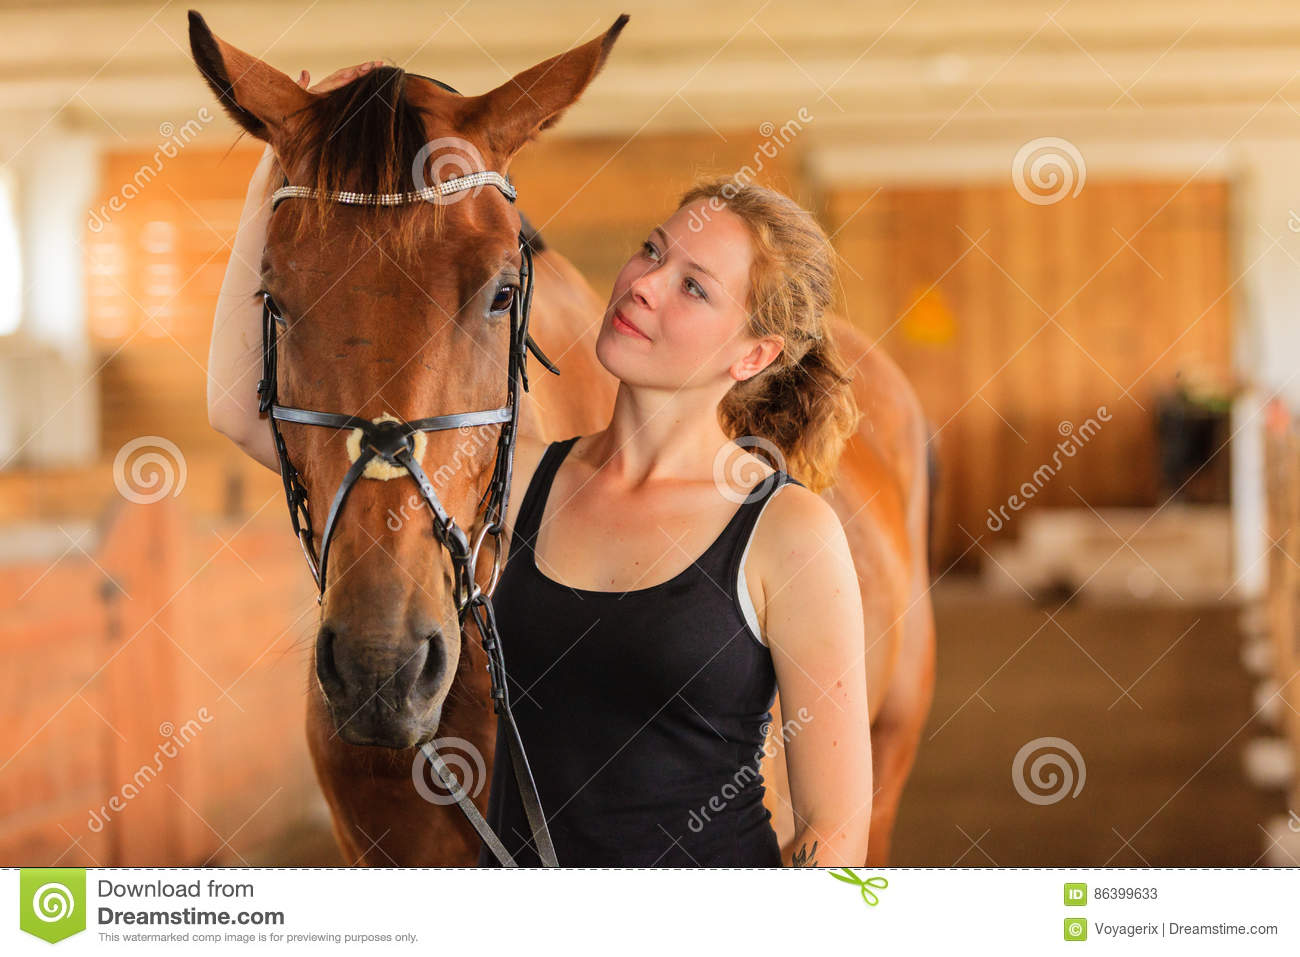 Download Jockey Young Girl Petting And Hugging Brown Horse Stock Image - Image of happy, mammal: 86399633